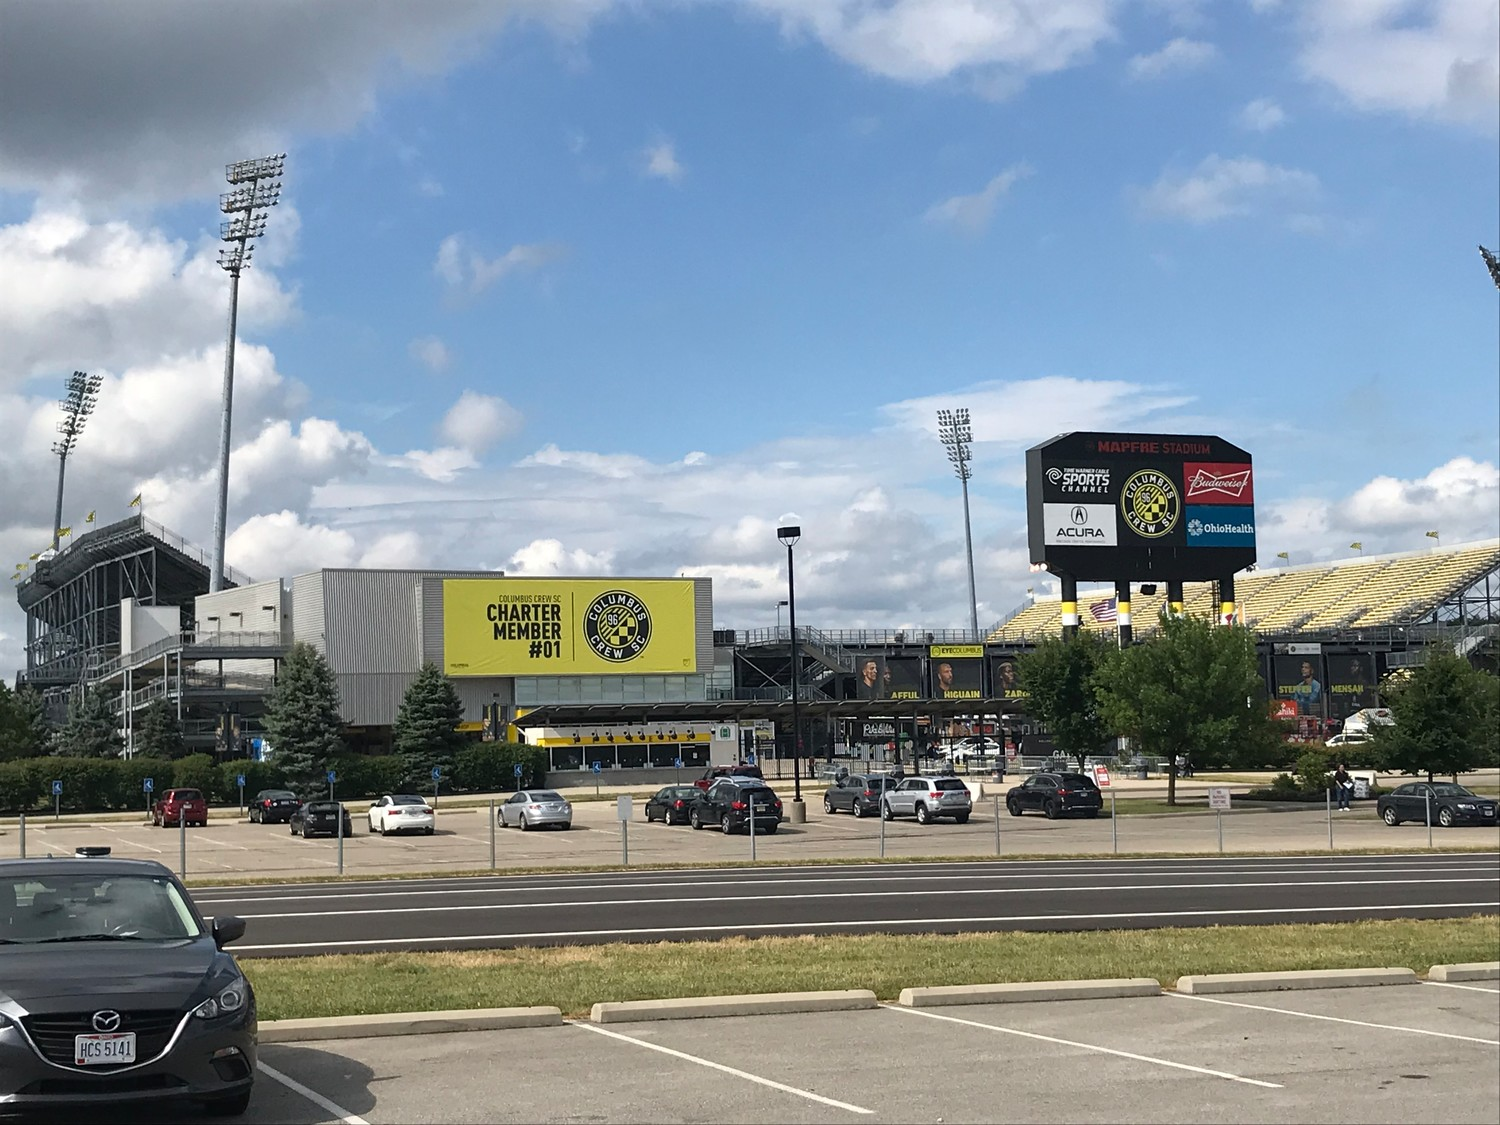 Mapfre Stadium, home of Columbus Crew SC, ahead of the game before Orlando City SC on Saturday evening.